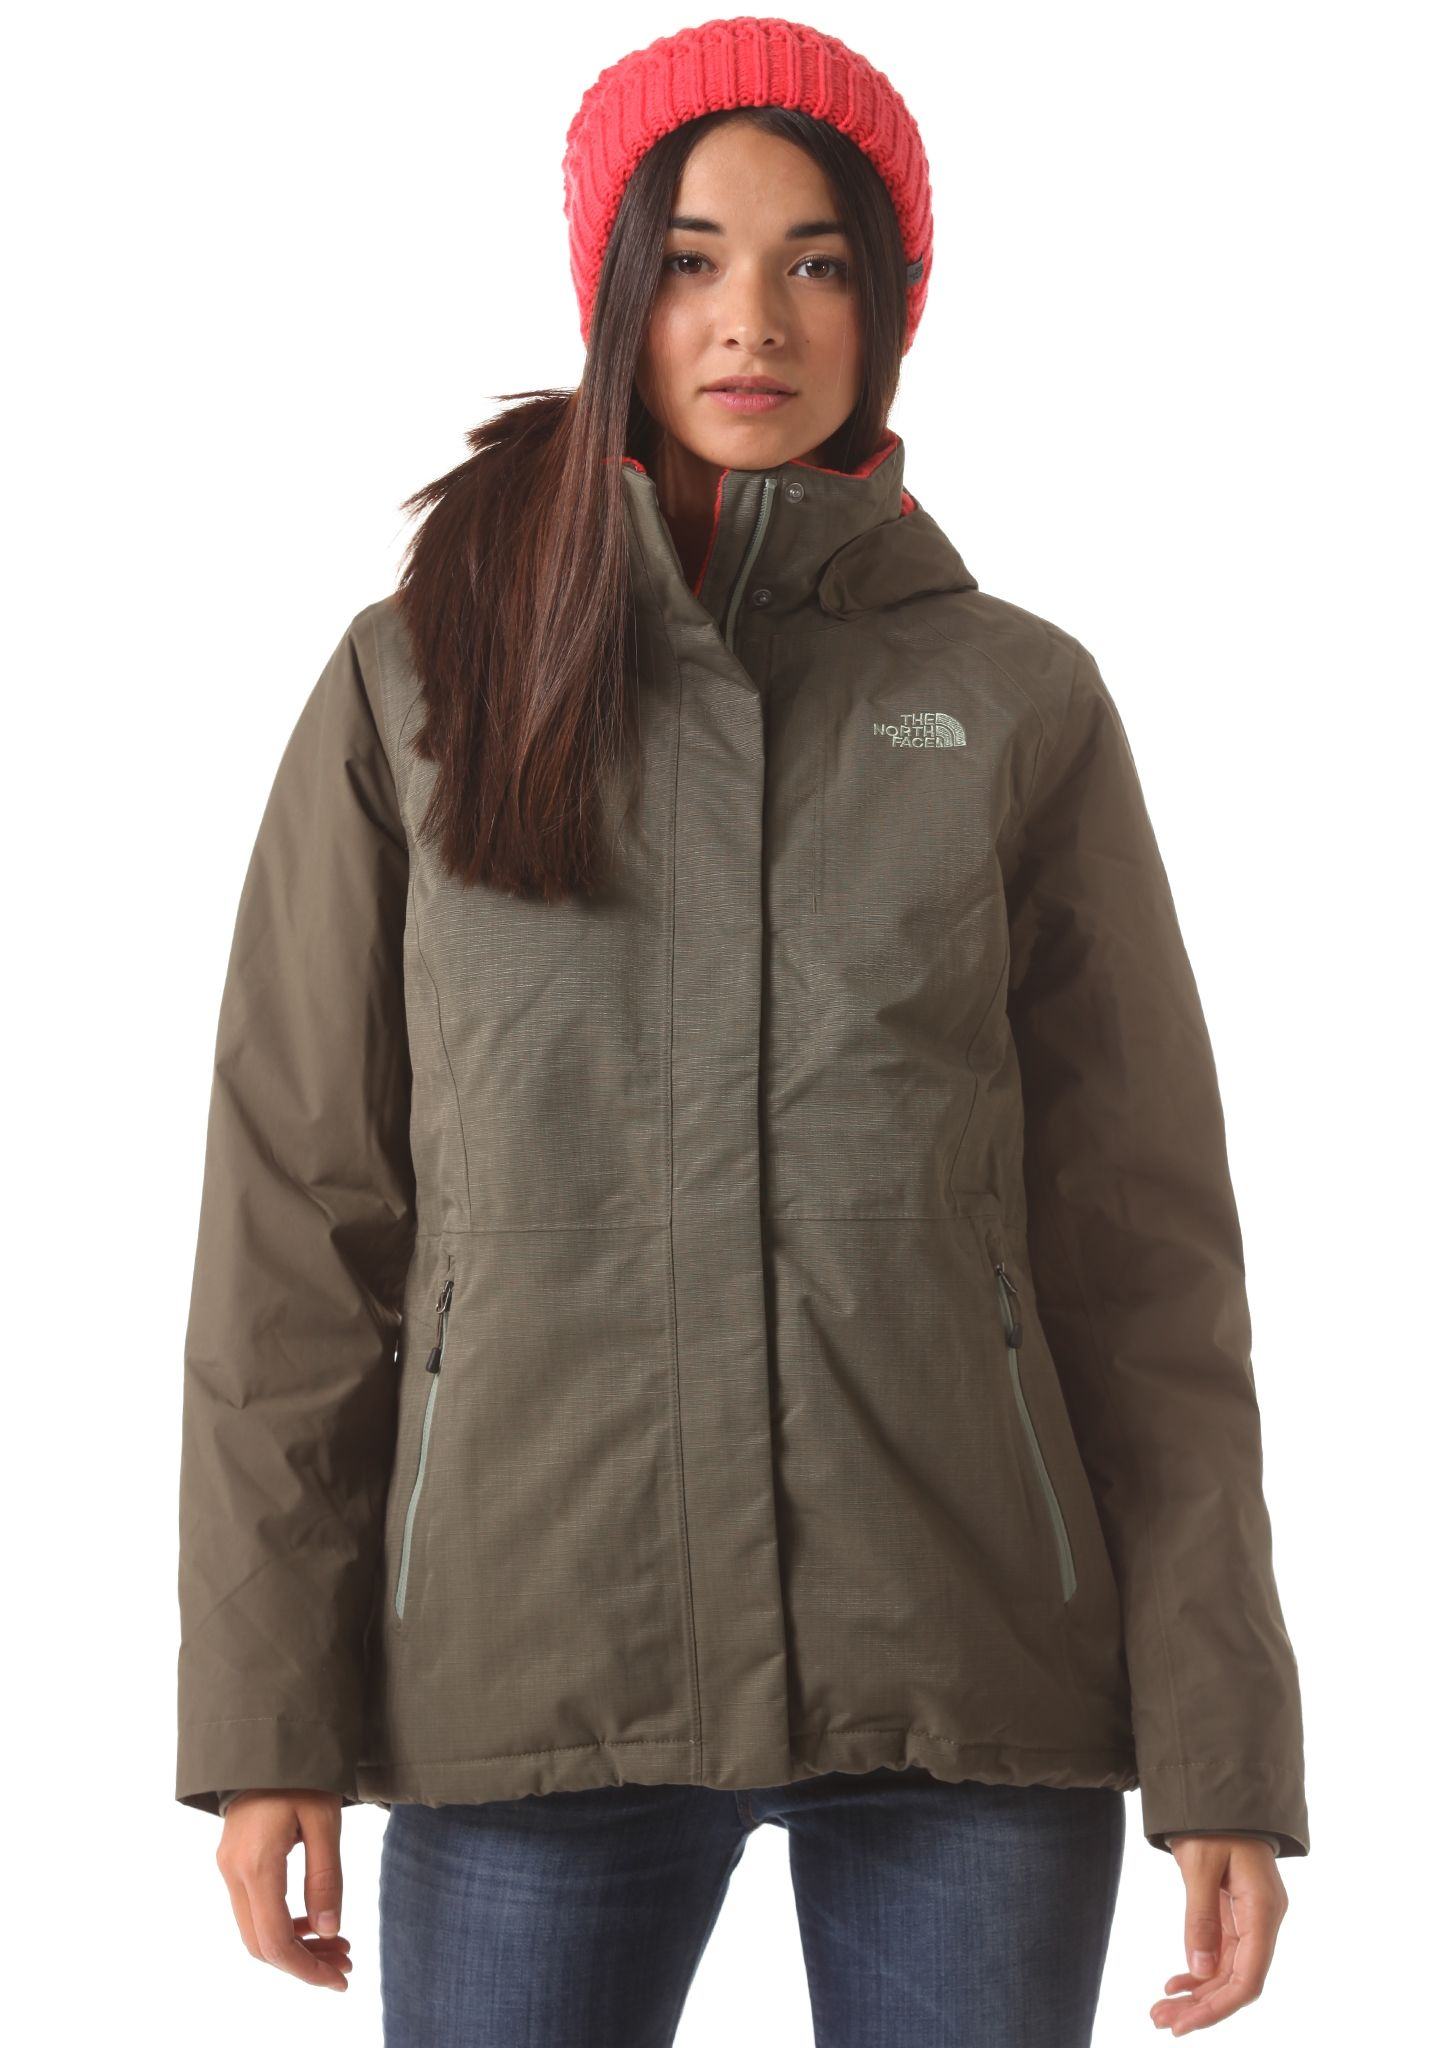 Face Insulated Sports Inlux North Vert Fonctionnelle Femme Veste Pour The Planet 4qBg5Zxw5